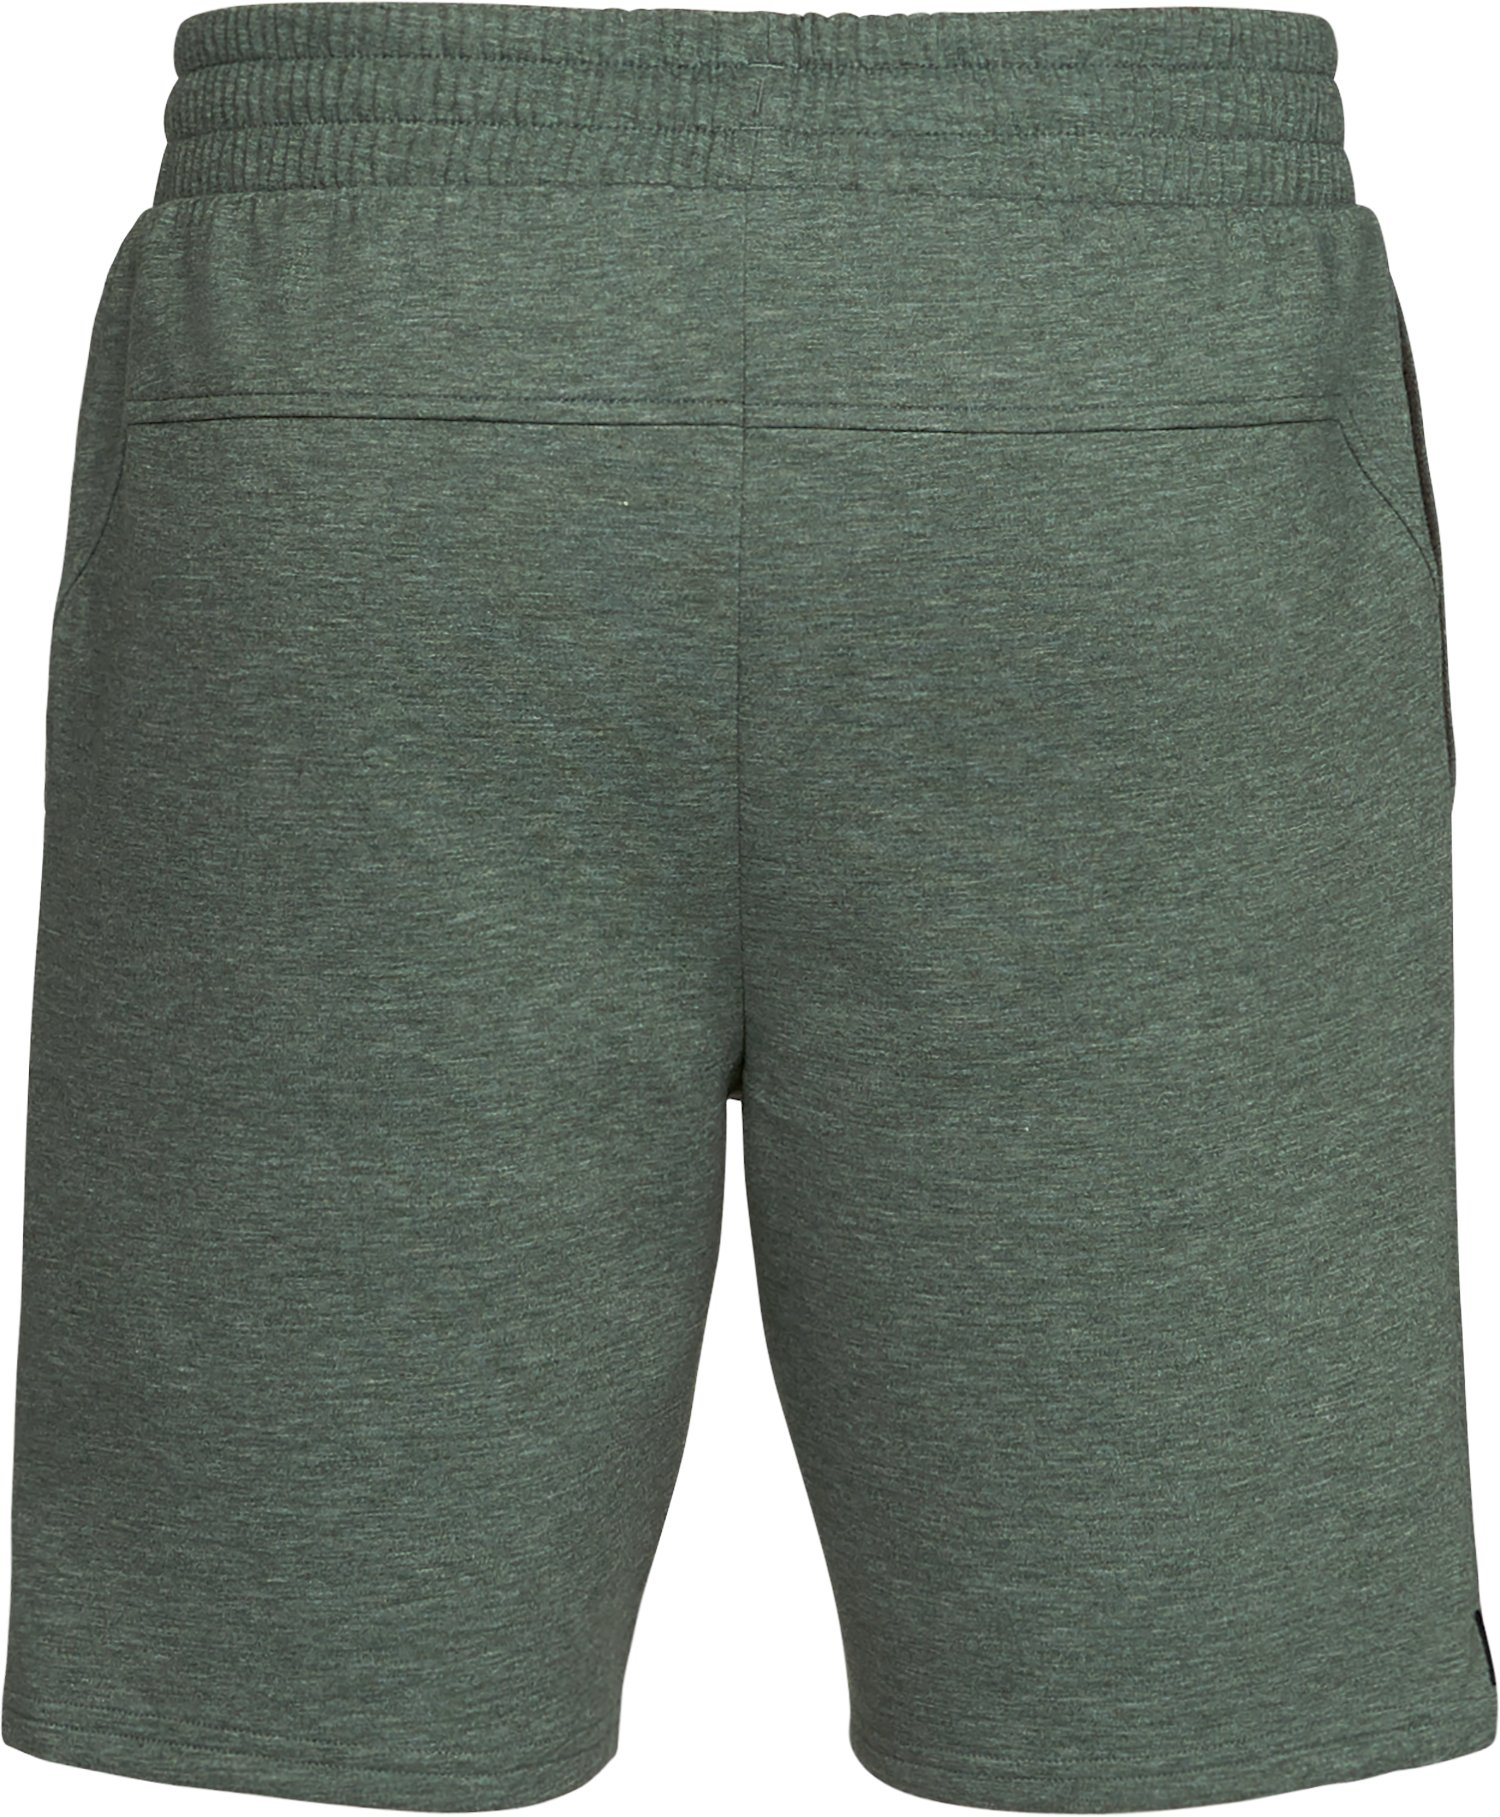 Men's UA Unstoppable Knit Shorts, Game Thyme,